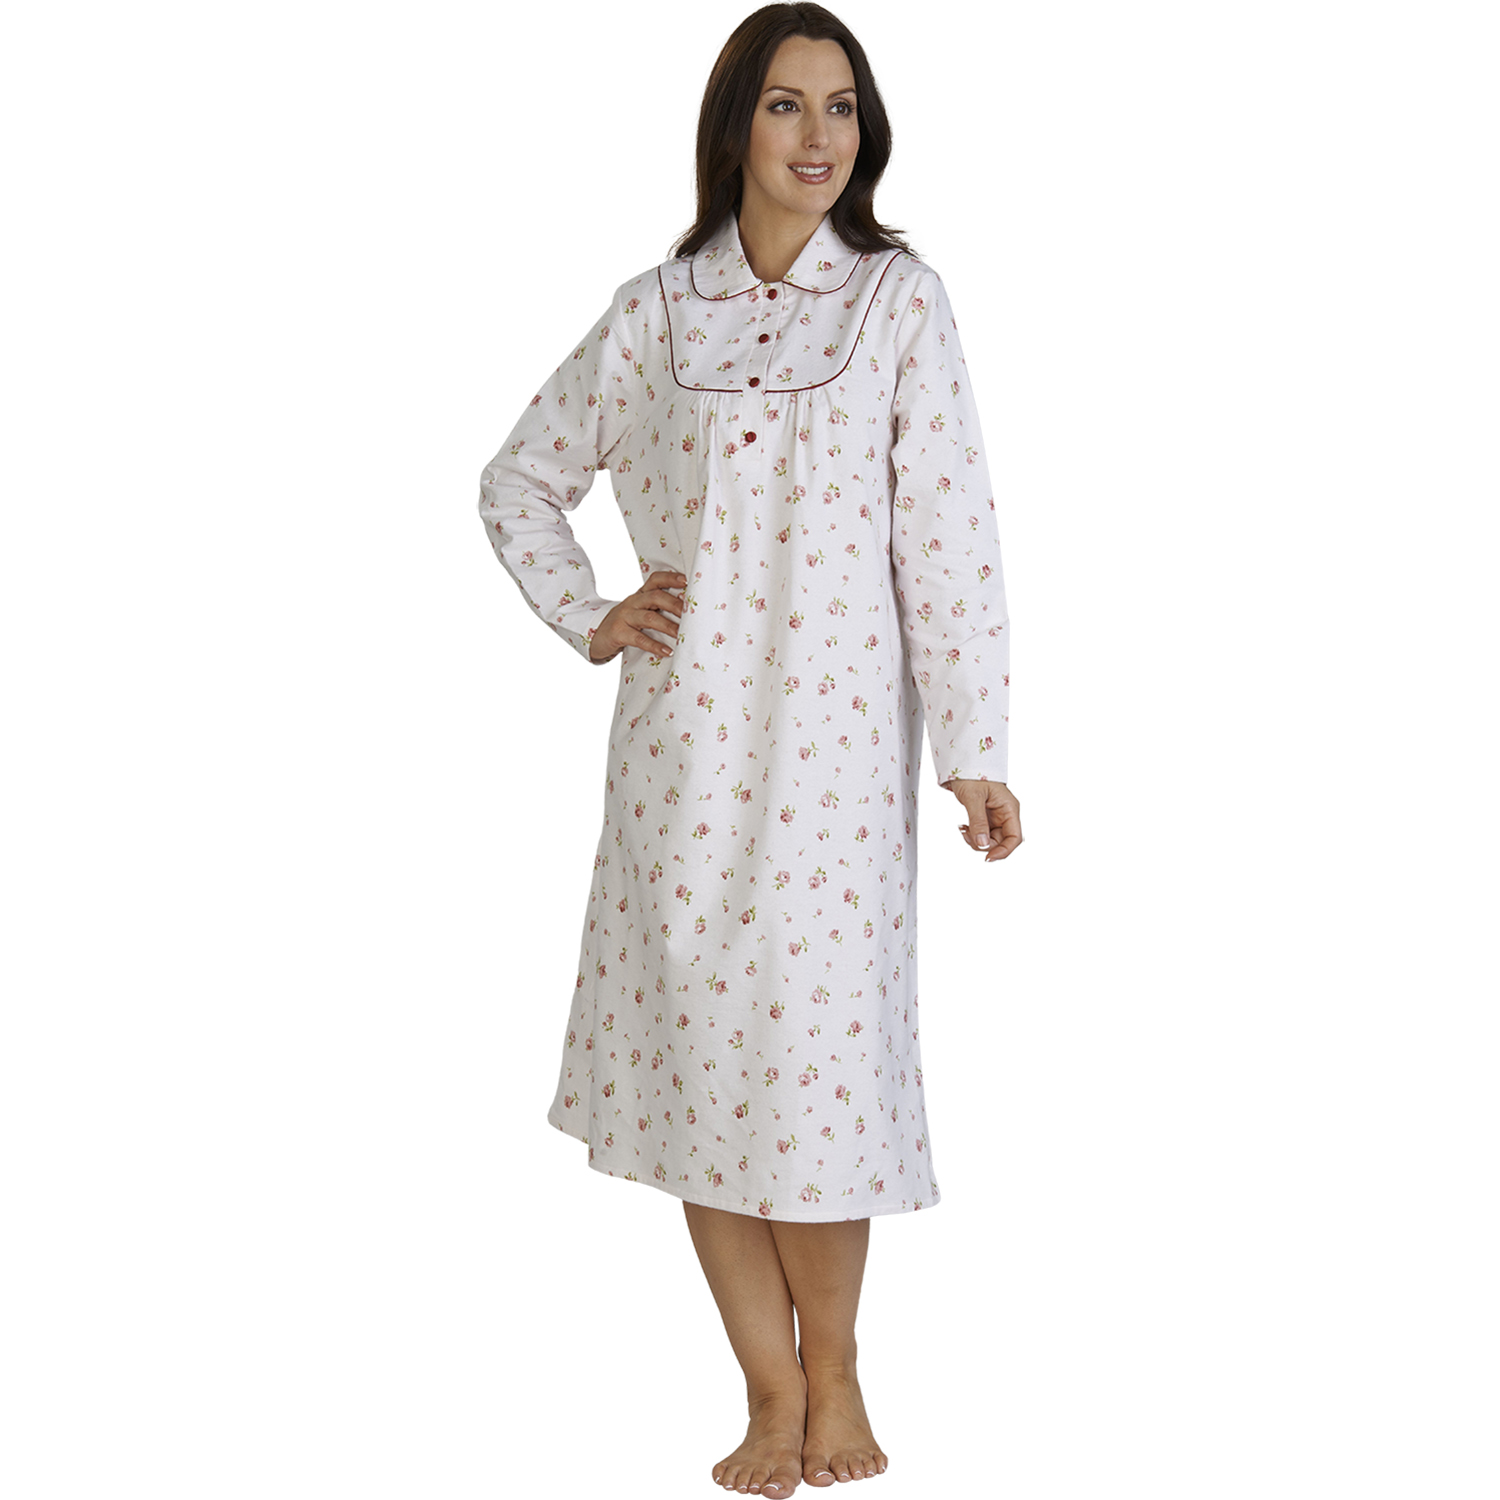 Ladies Floral Brushed Cotton Nightie Womens Slenderella Flannel ... a8ab2d075